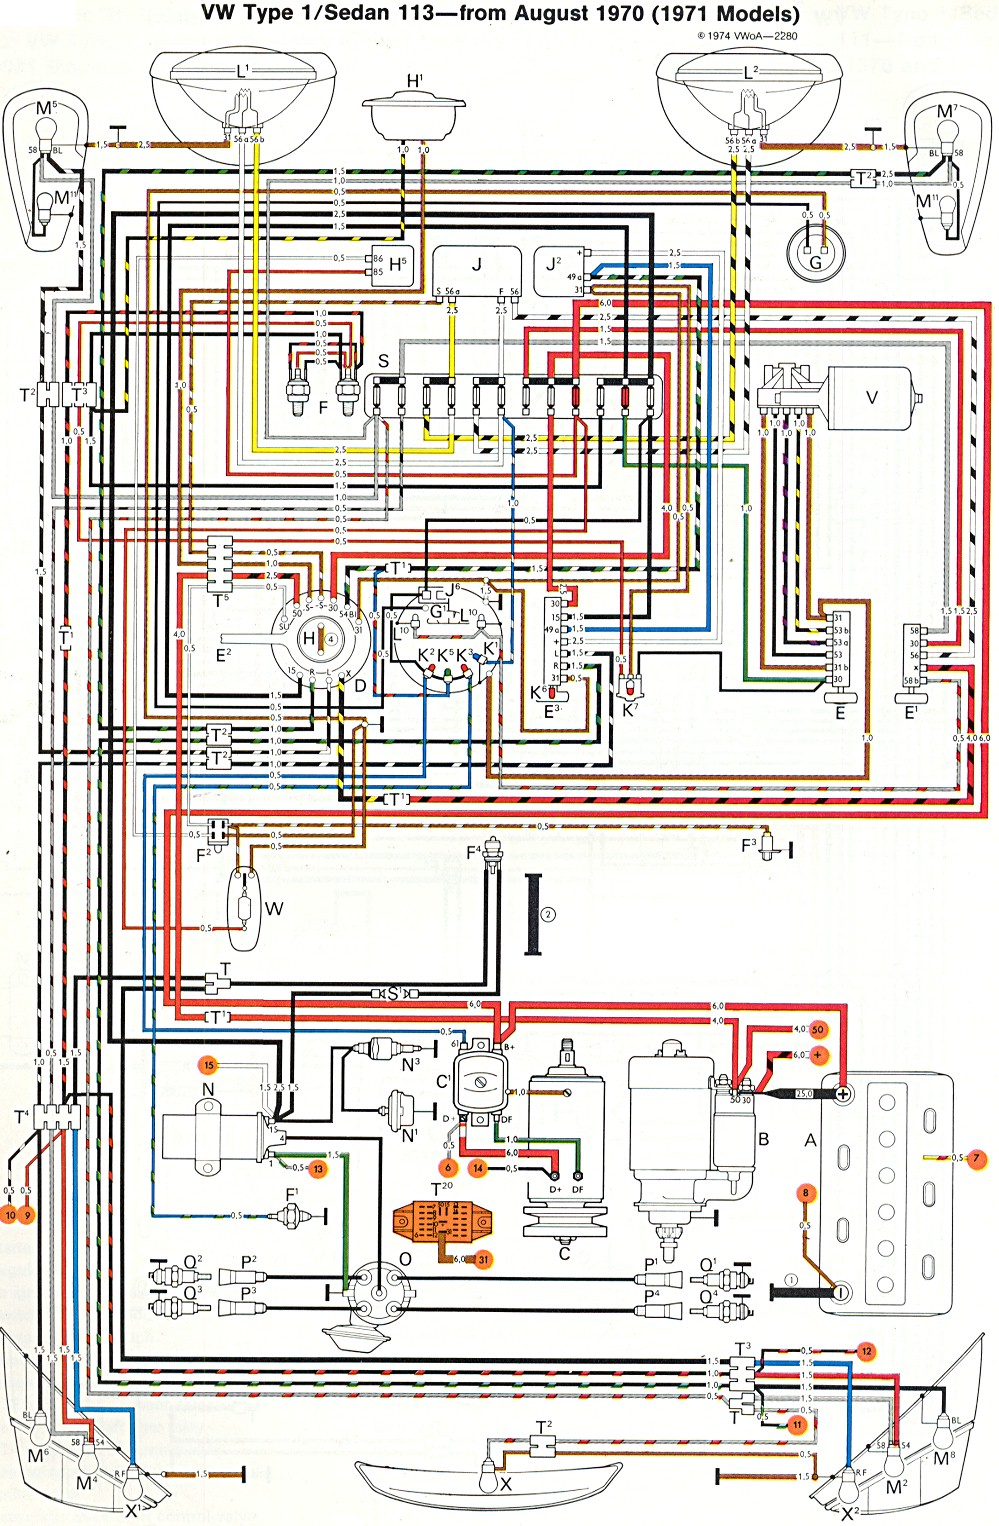 volkswagen 2002 beetle wiring diagram detailed schematic diagrams rh 4rmotorsports com 1973 VW Wiring Diagram 1973 VW Wiring Diagram